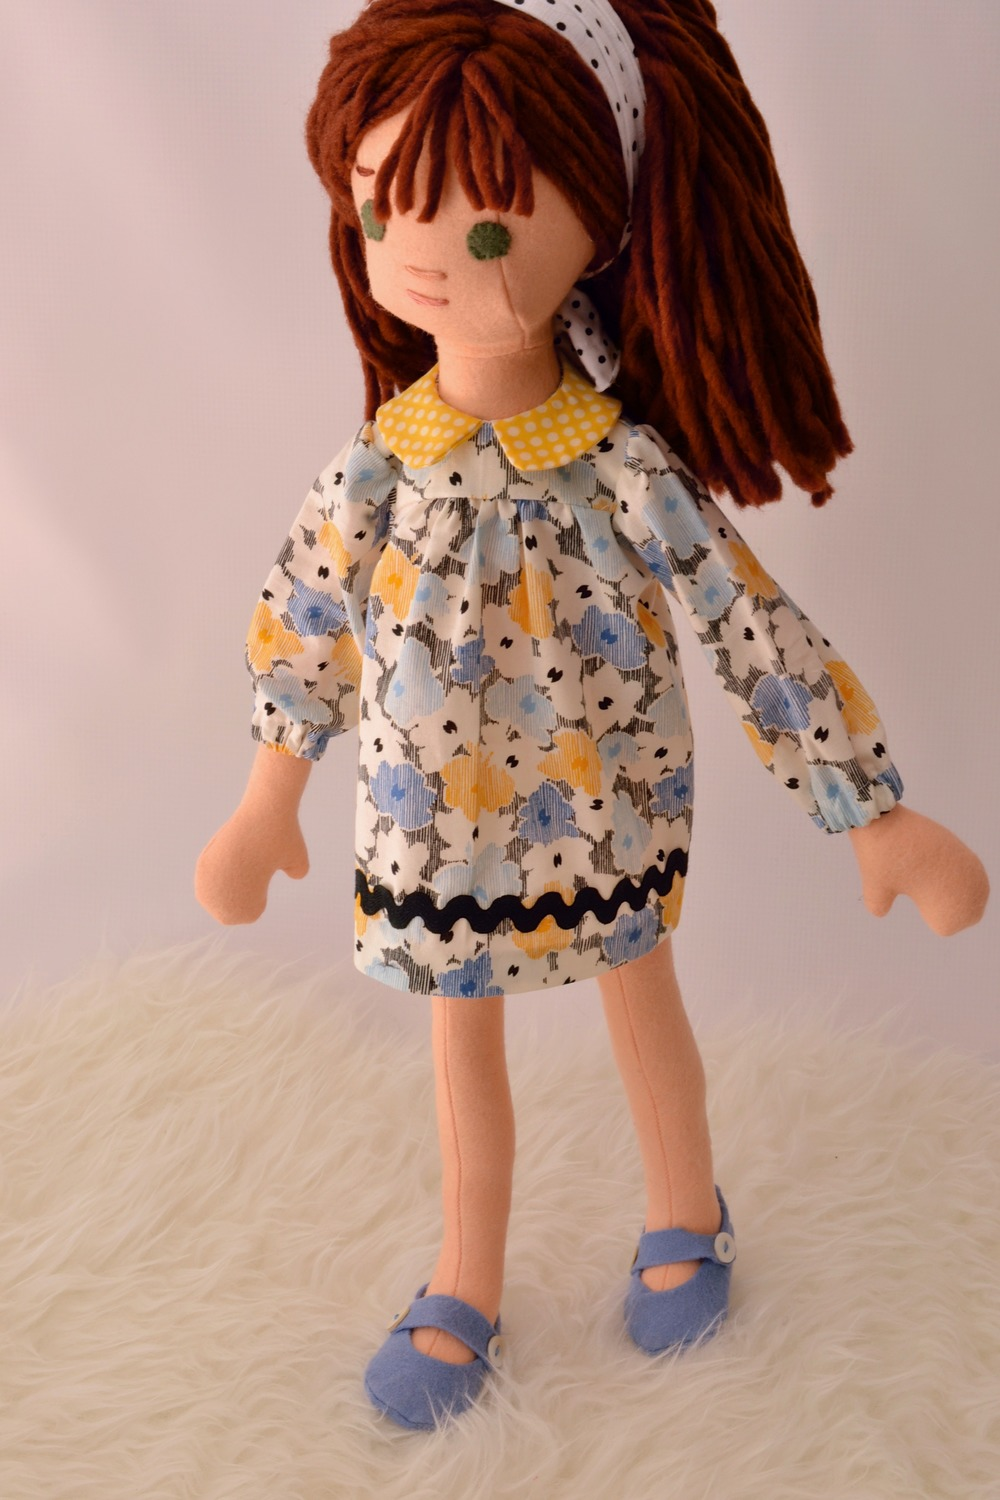 A custom Phoebe Doll